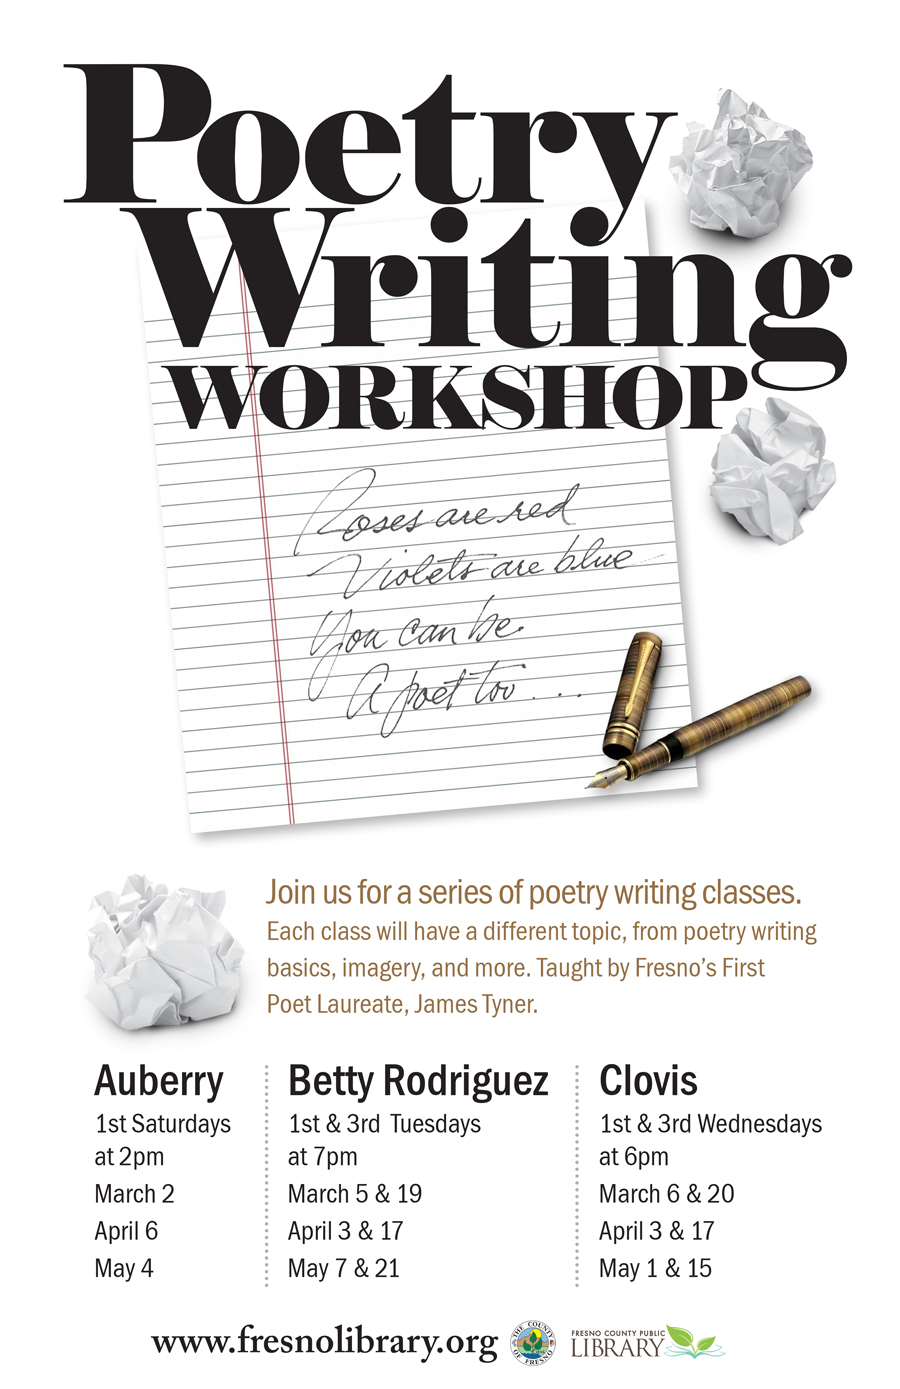 Spring-poetry-writing-class-auberry-betty-clovis-2019